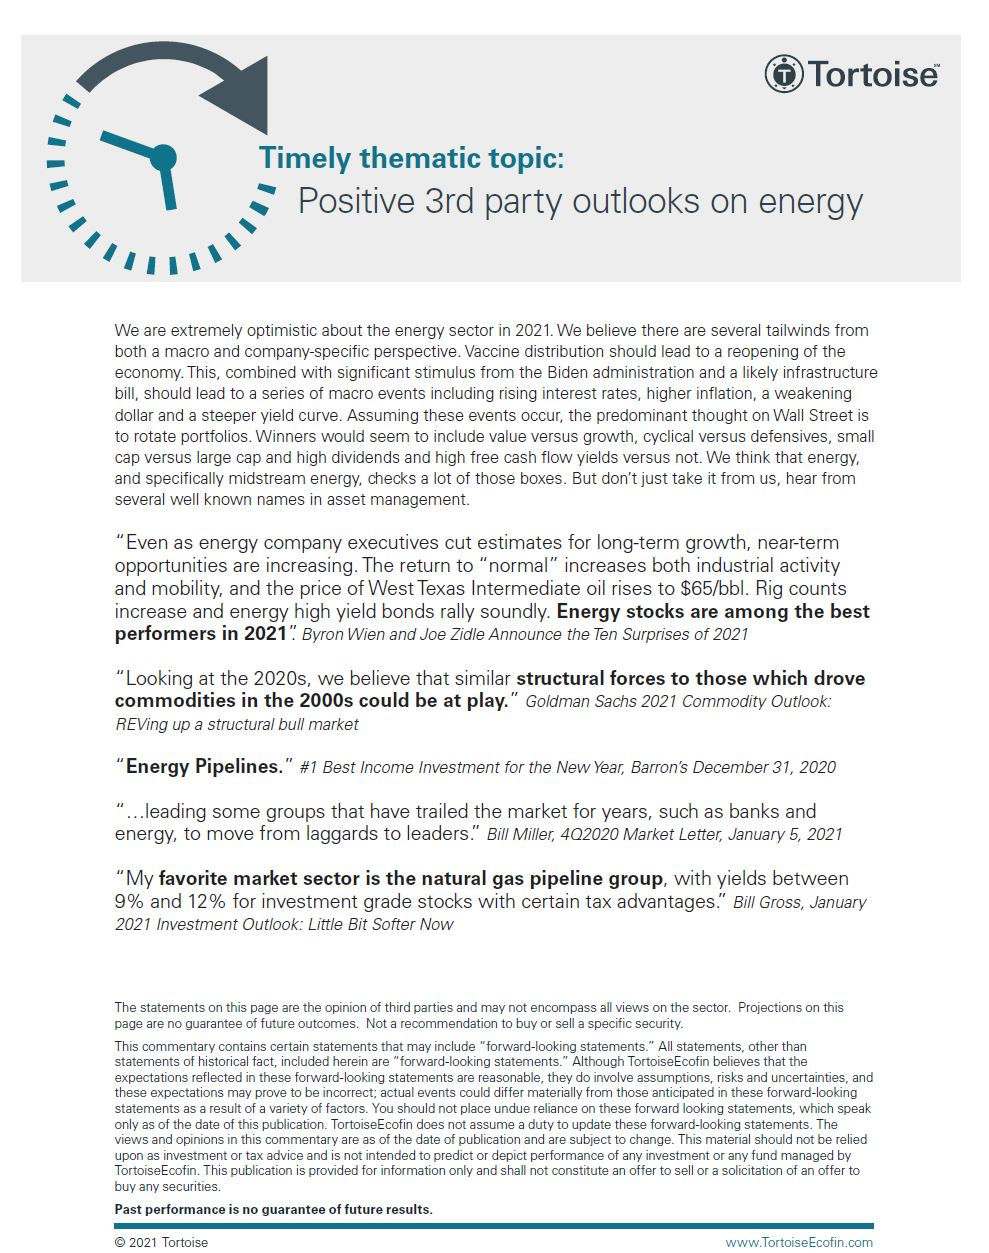 Timely thematic topic: Positive 3rd party outlooks on energy